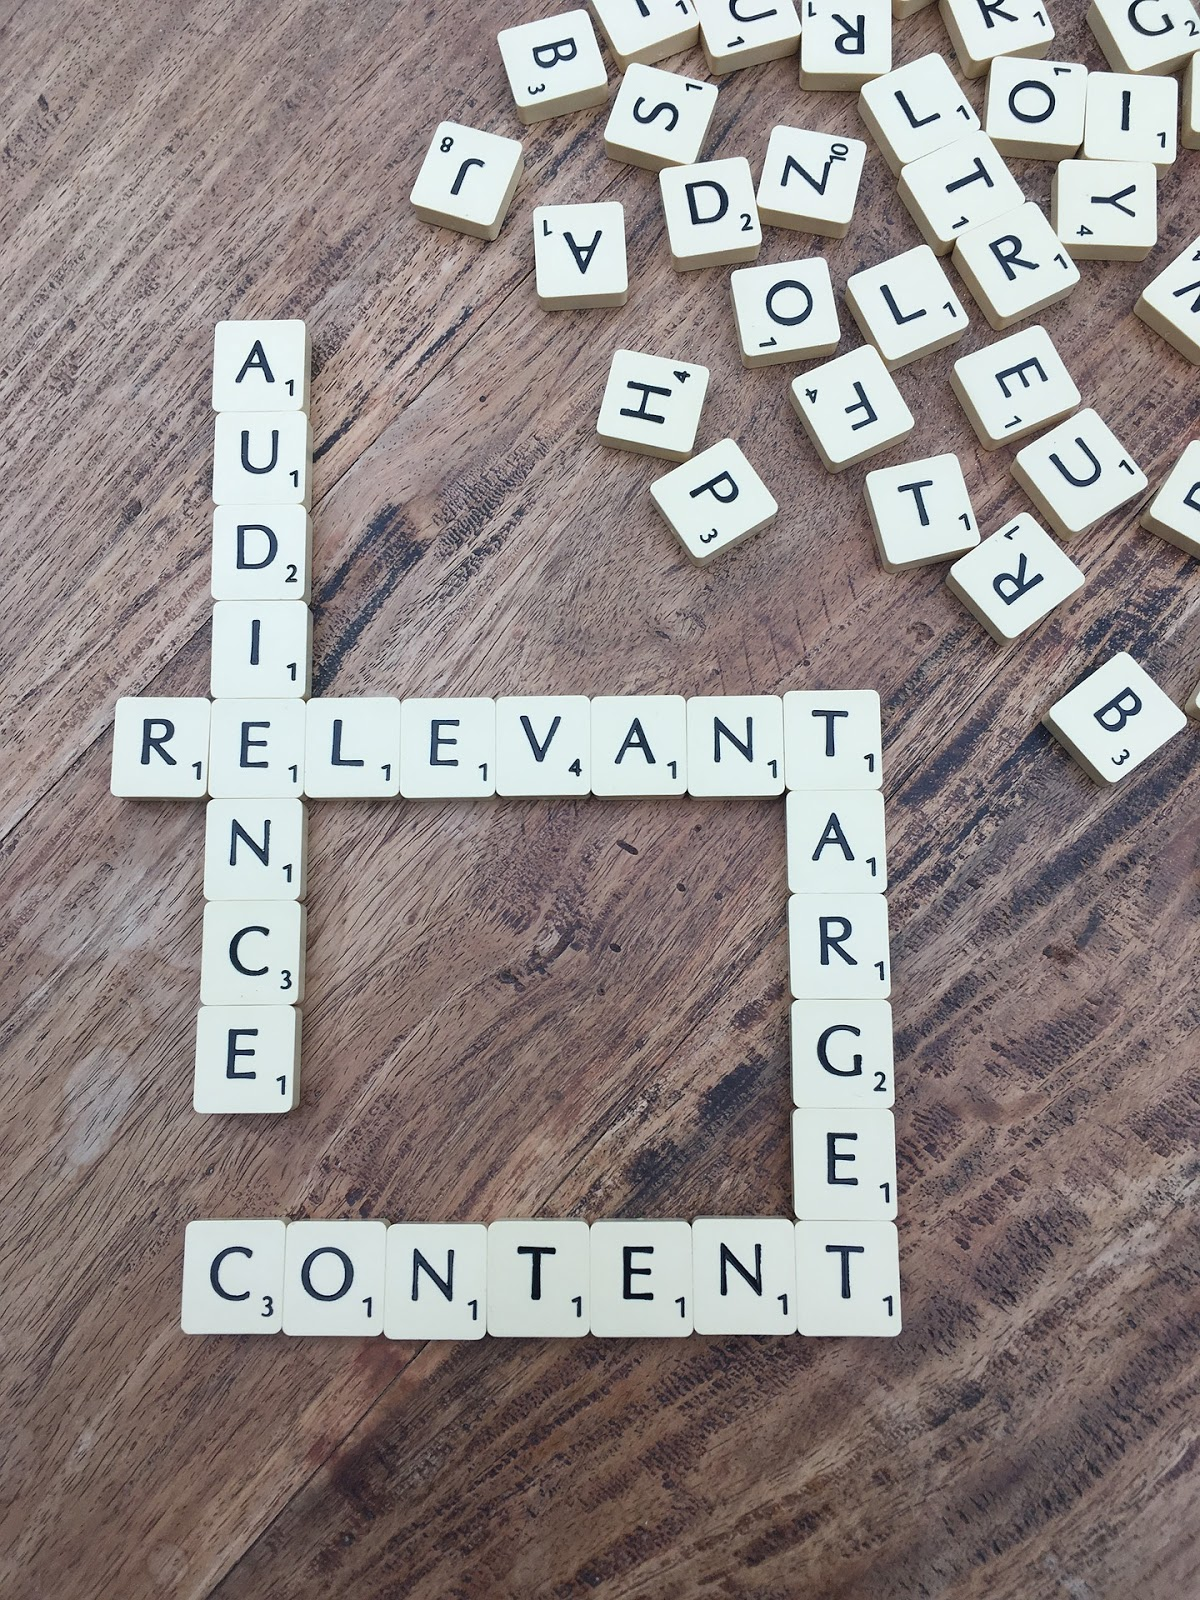 Relevant Audience Target Content Domino Strategy on Wooden Desk